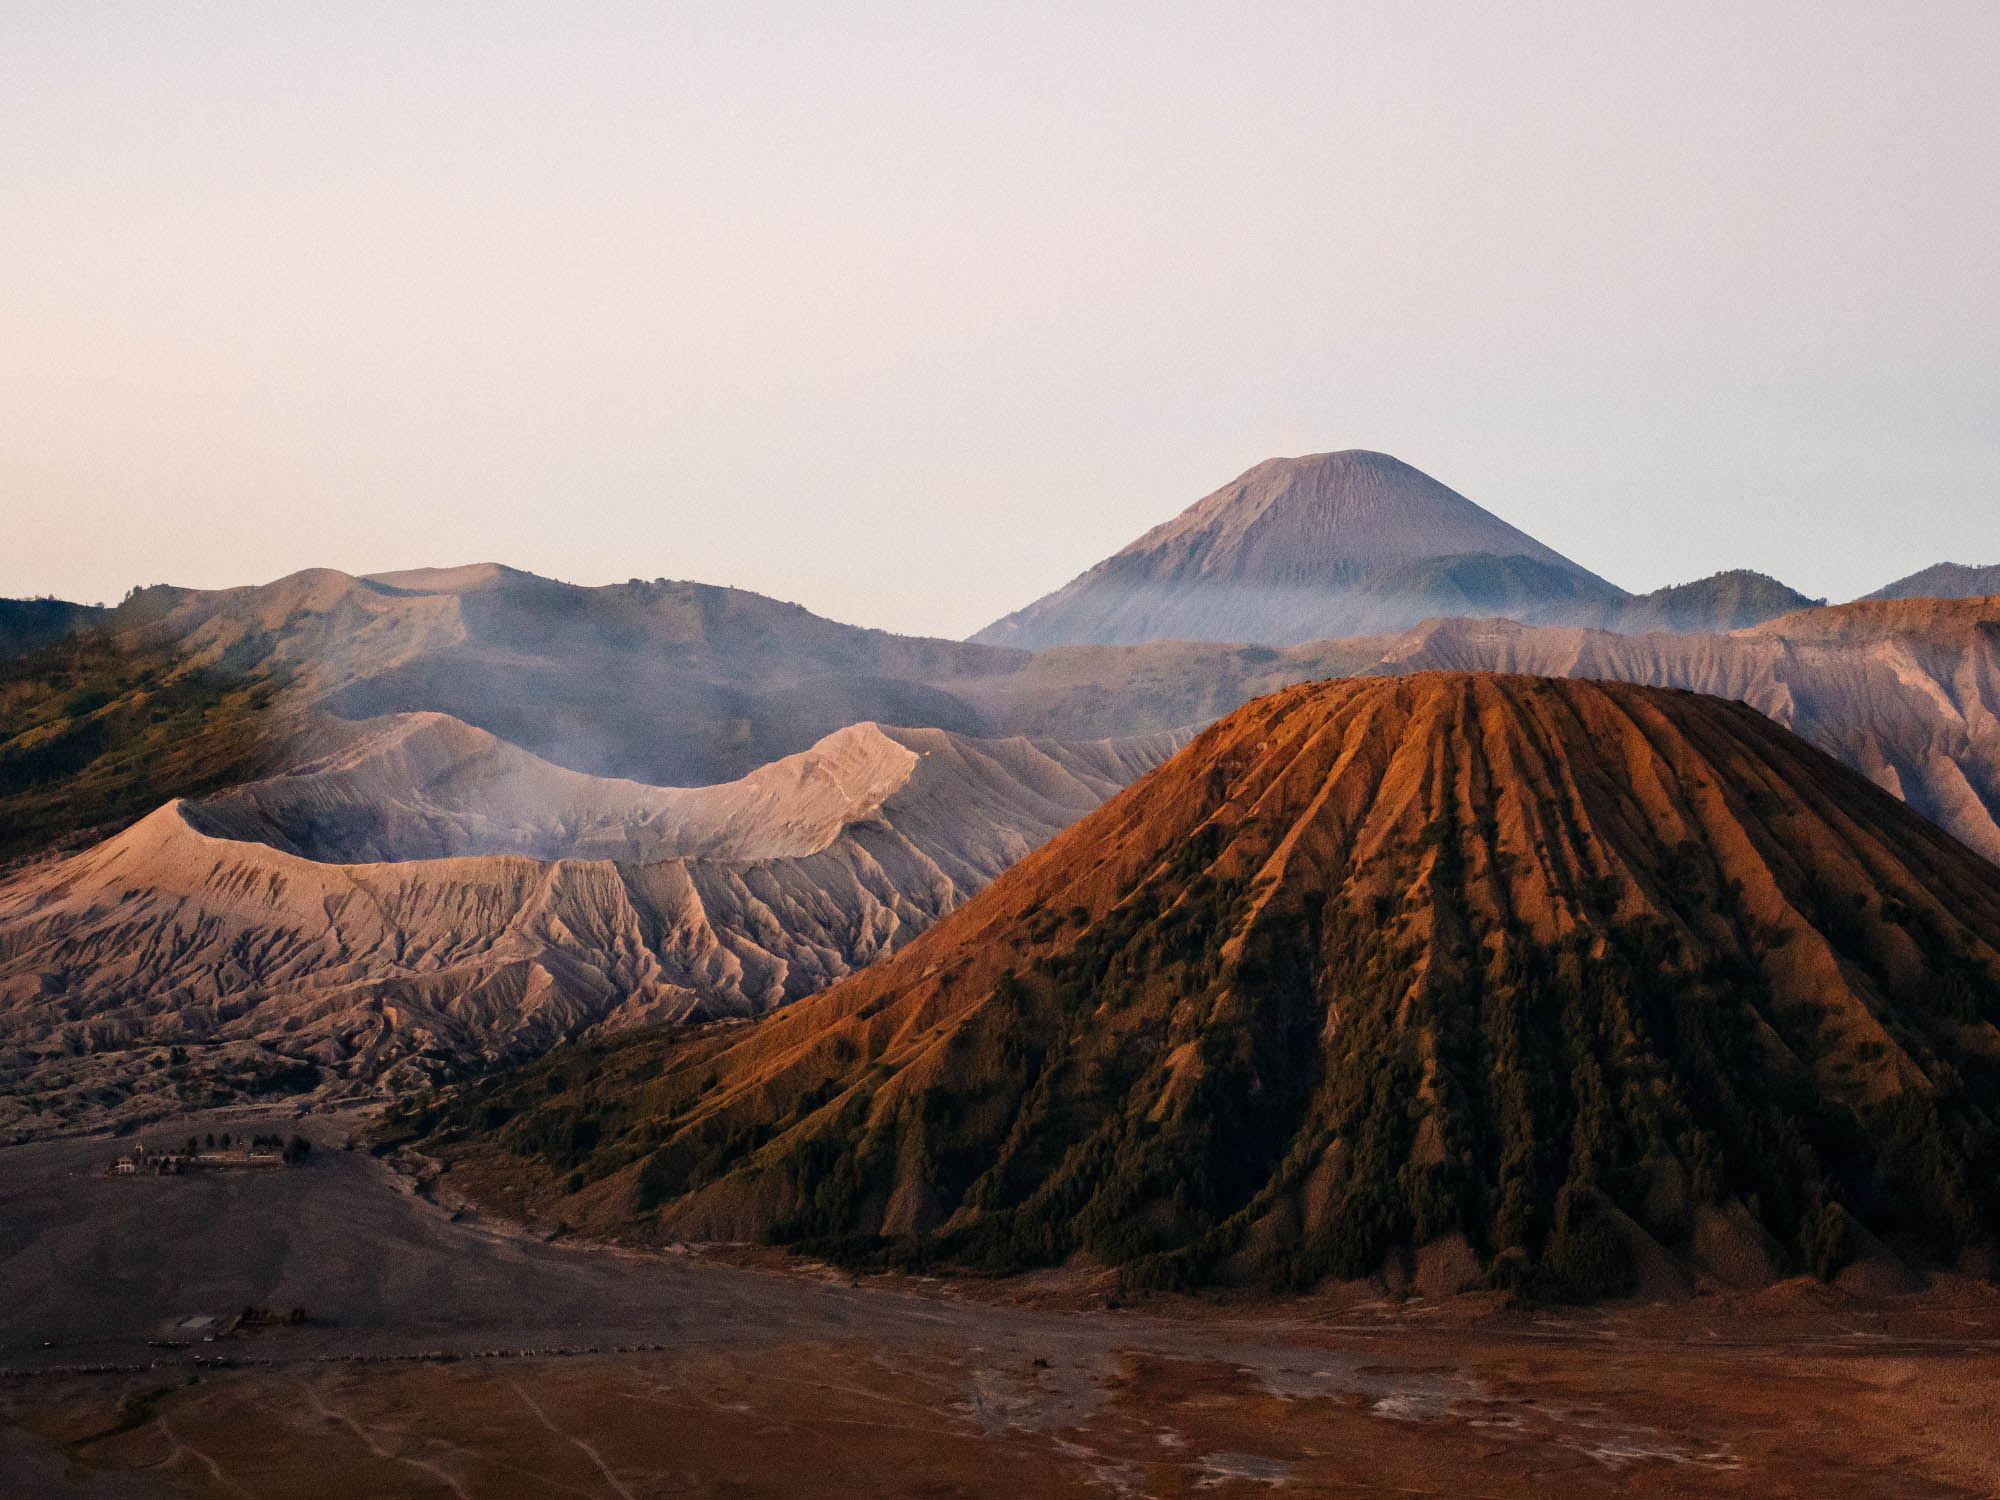 joris-hermans-photography-bromo-13.jpg